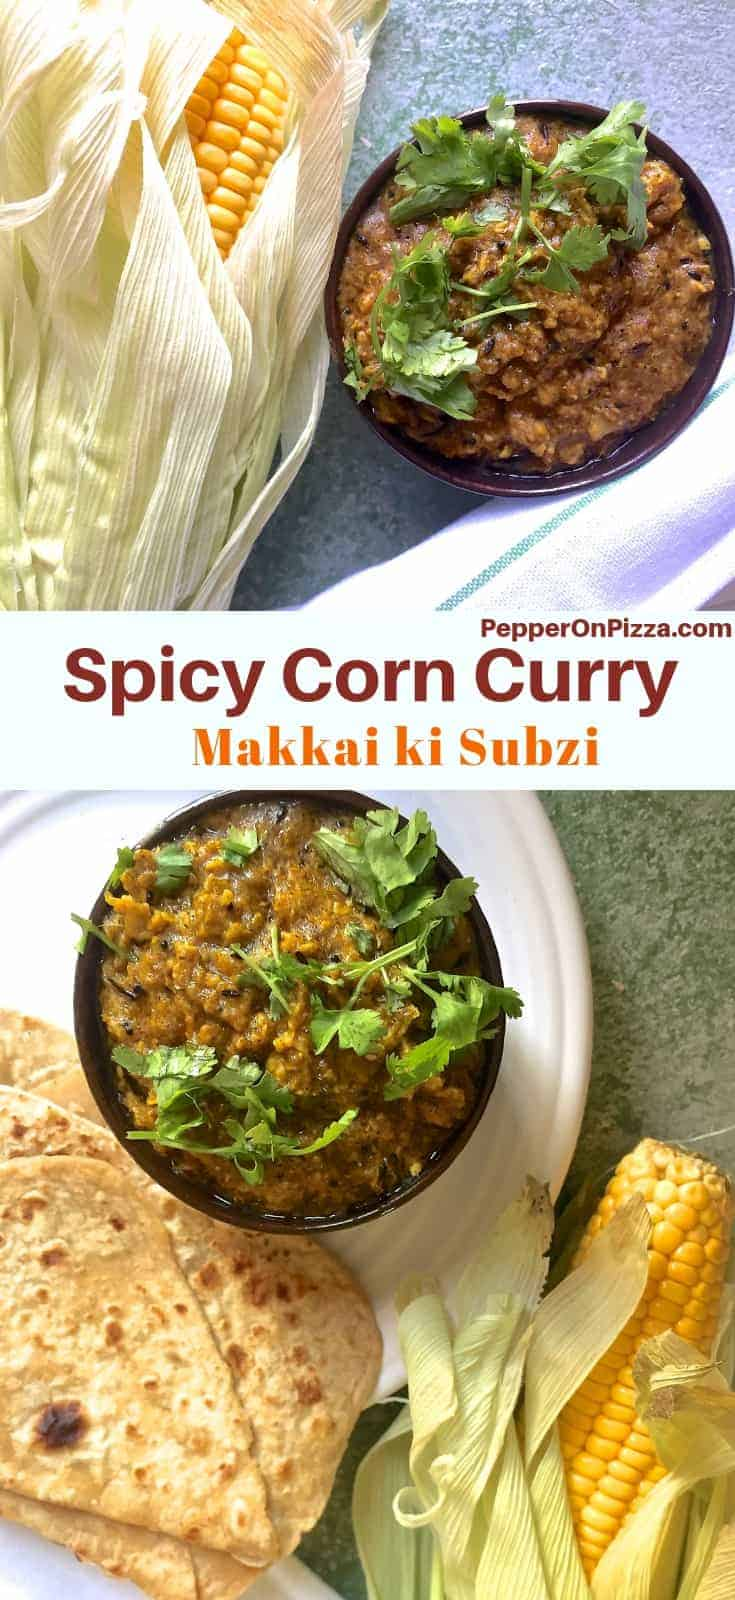 Makai ki Subi from Madhya Pradesh cuisine - in a bowl garnished with coriander and with a corn cob visible on one side and a white napkin with green stripes on the other